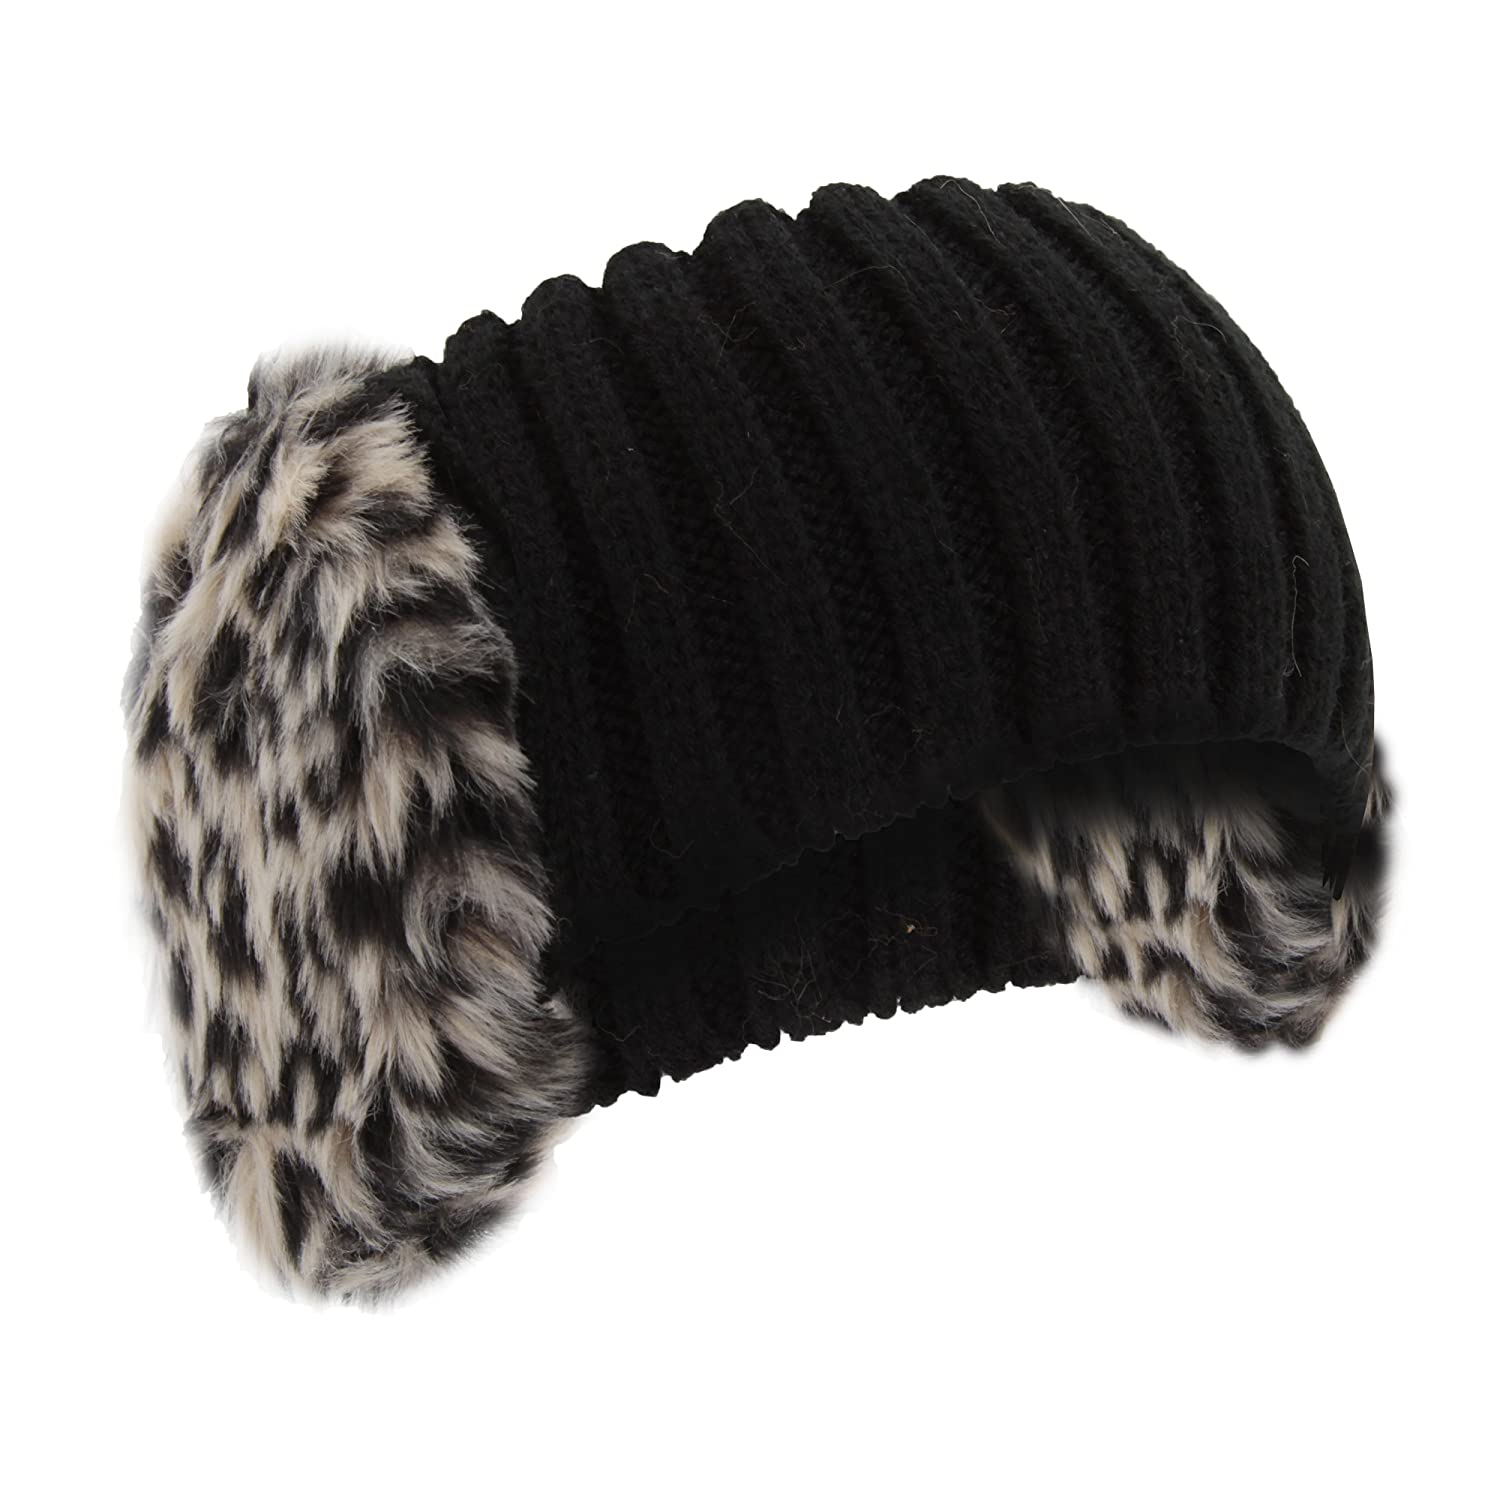 Universal Textiles Womens/Ladies Knitted Faux Fur Winter Headband With Earmuffs UTHA289_2